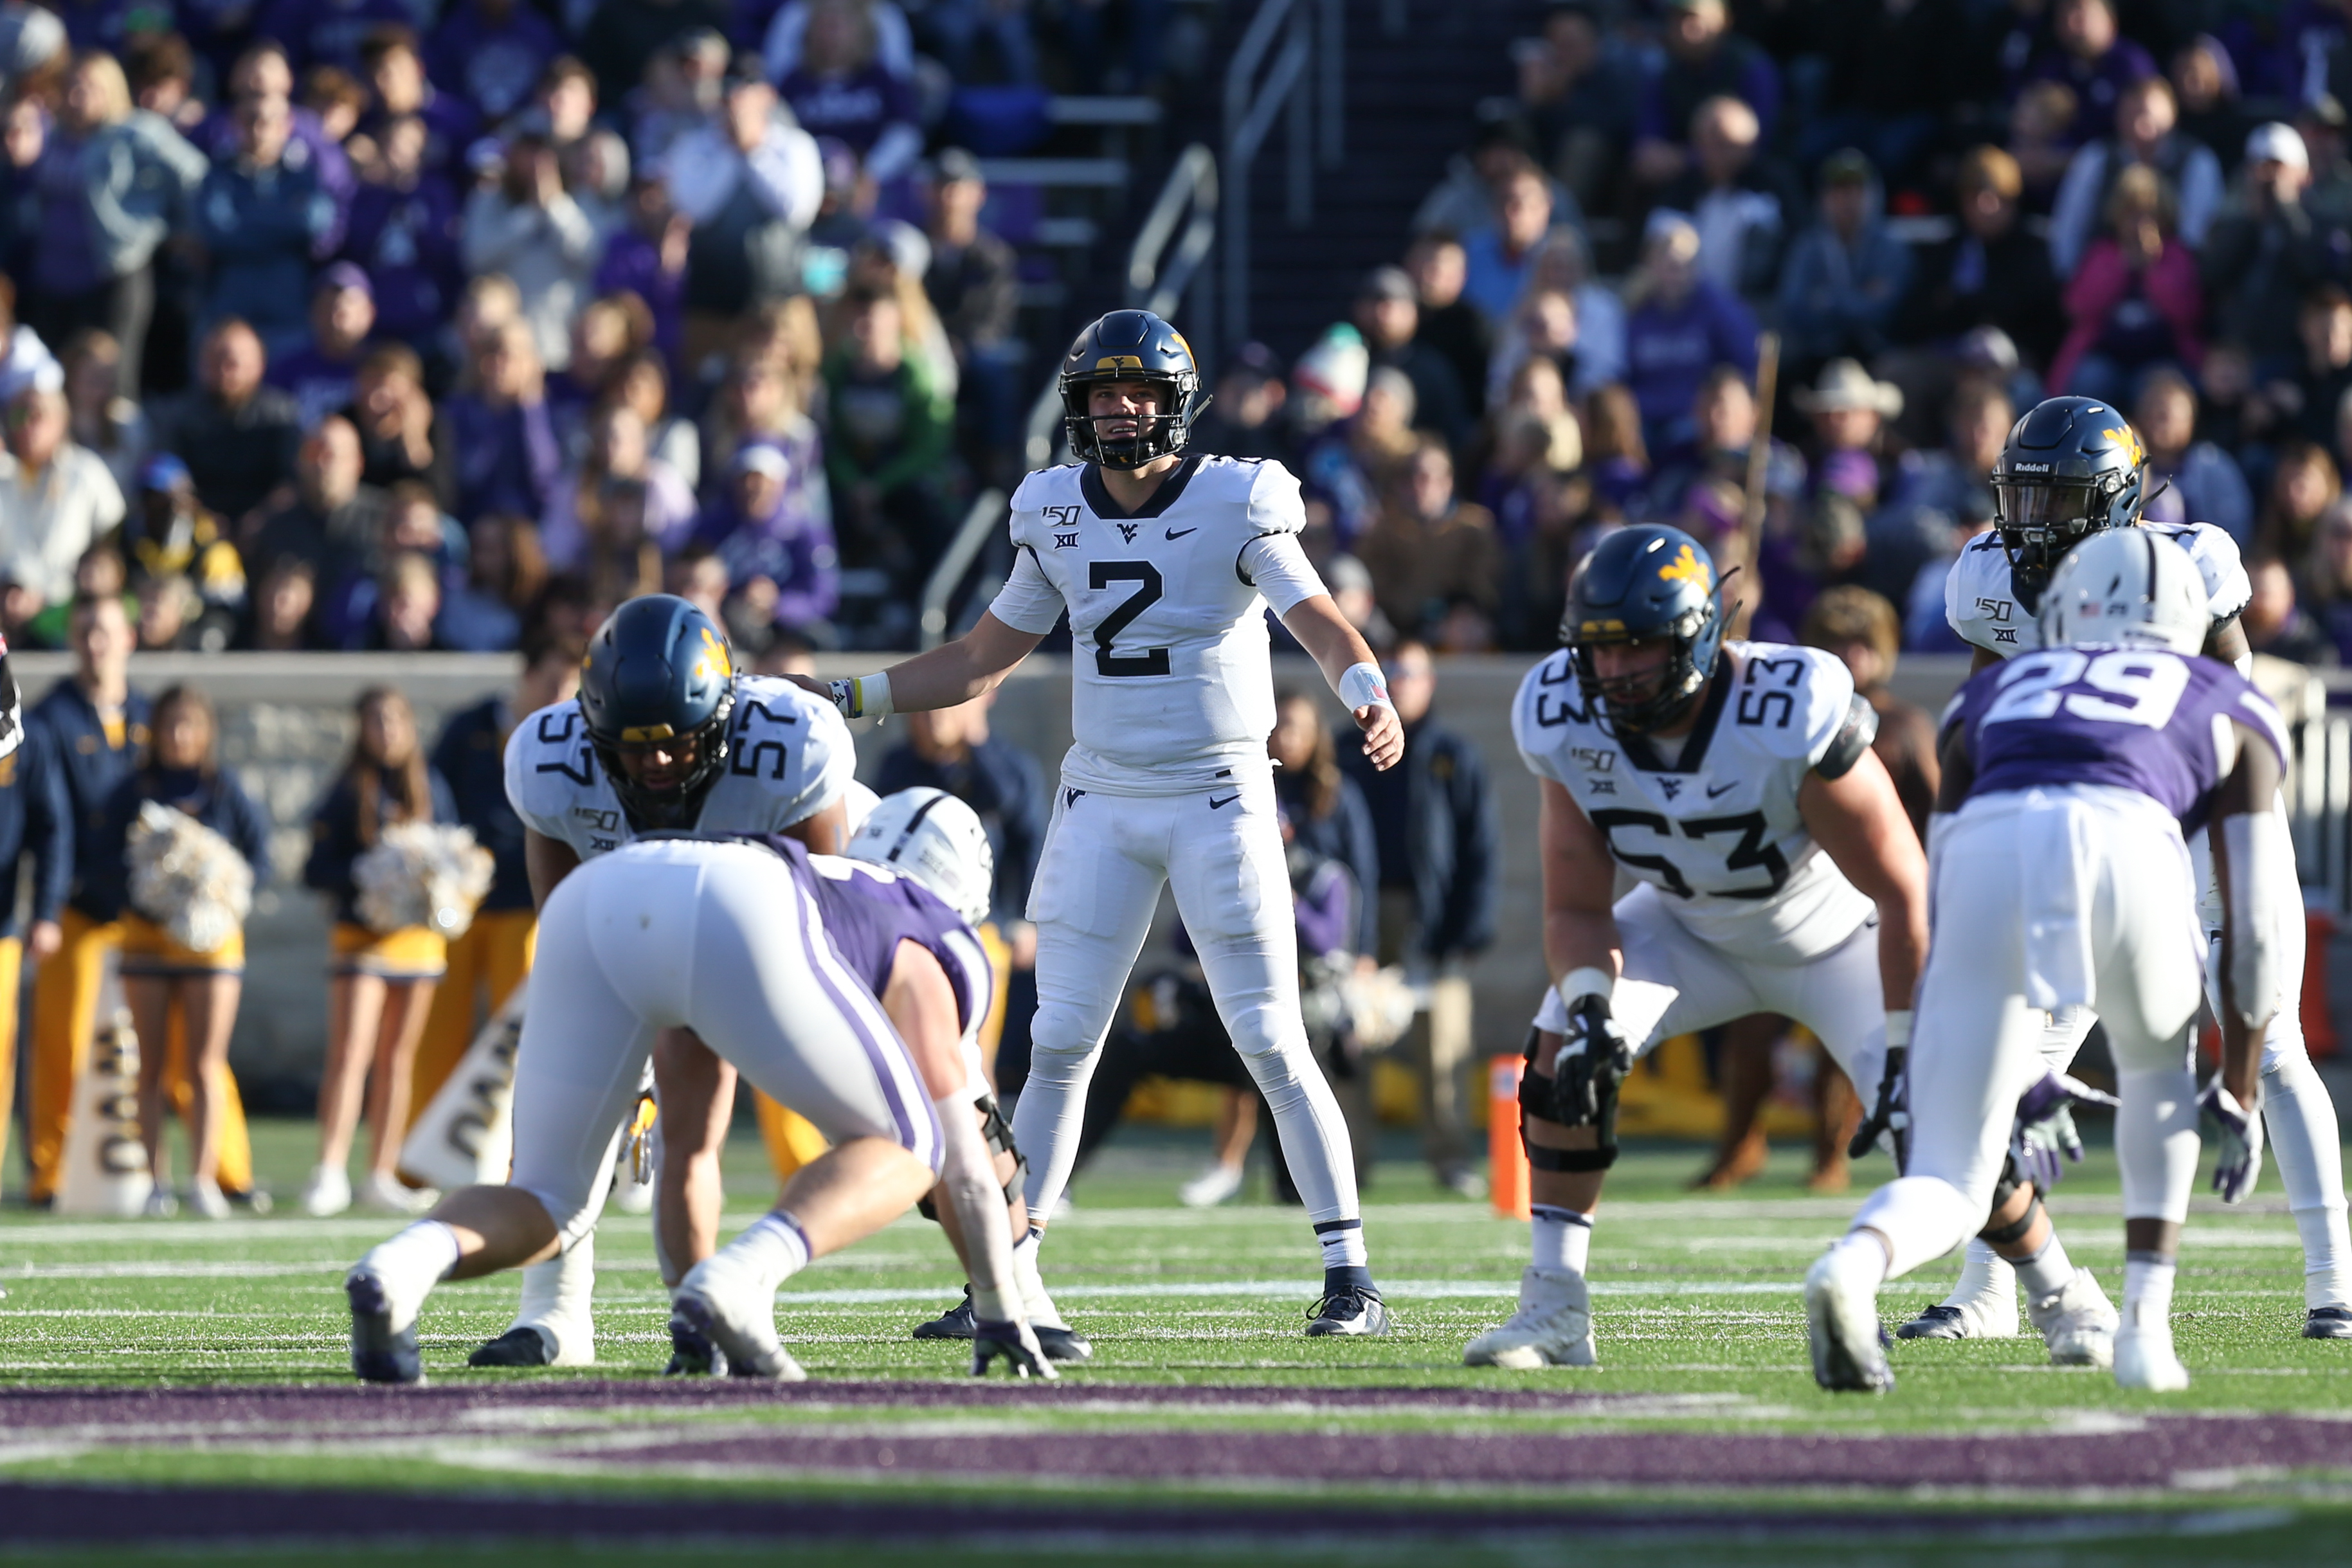 COLLEGE FOOTBALL: NOV 16 West Virginia at Kansas State